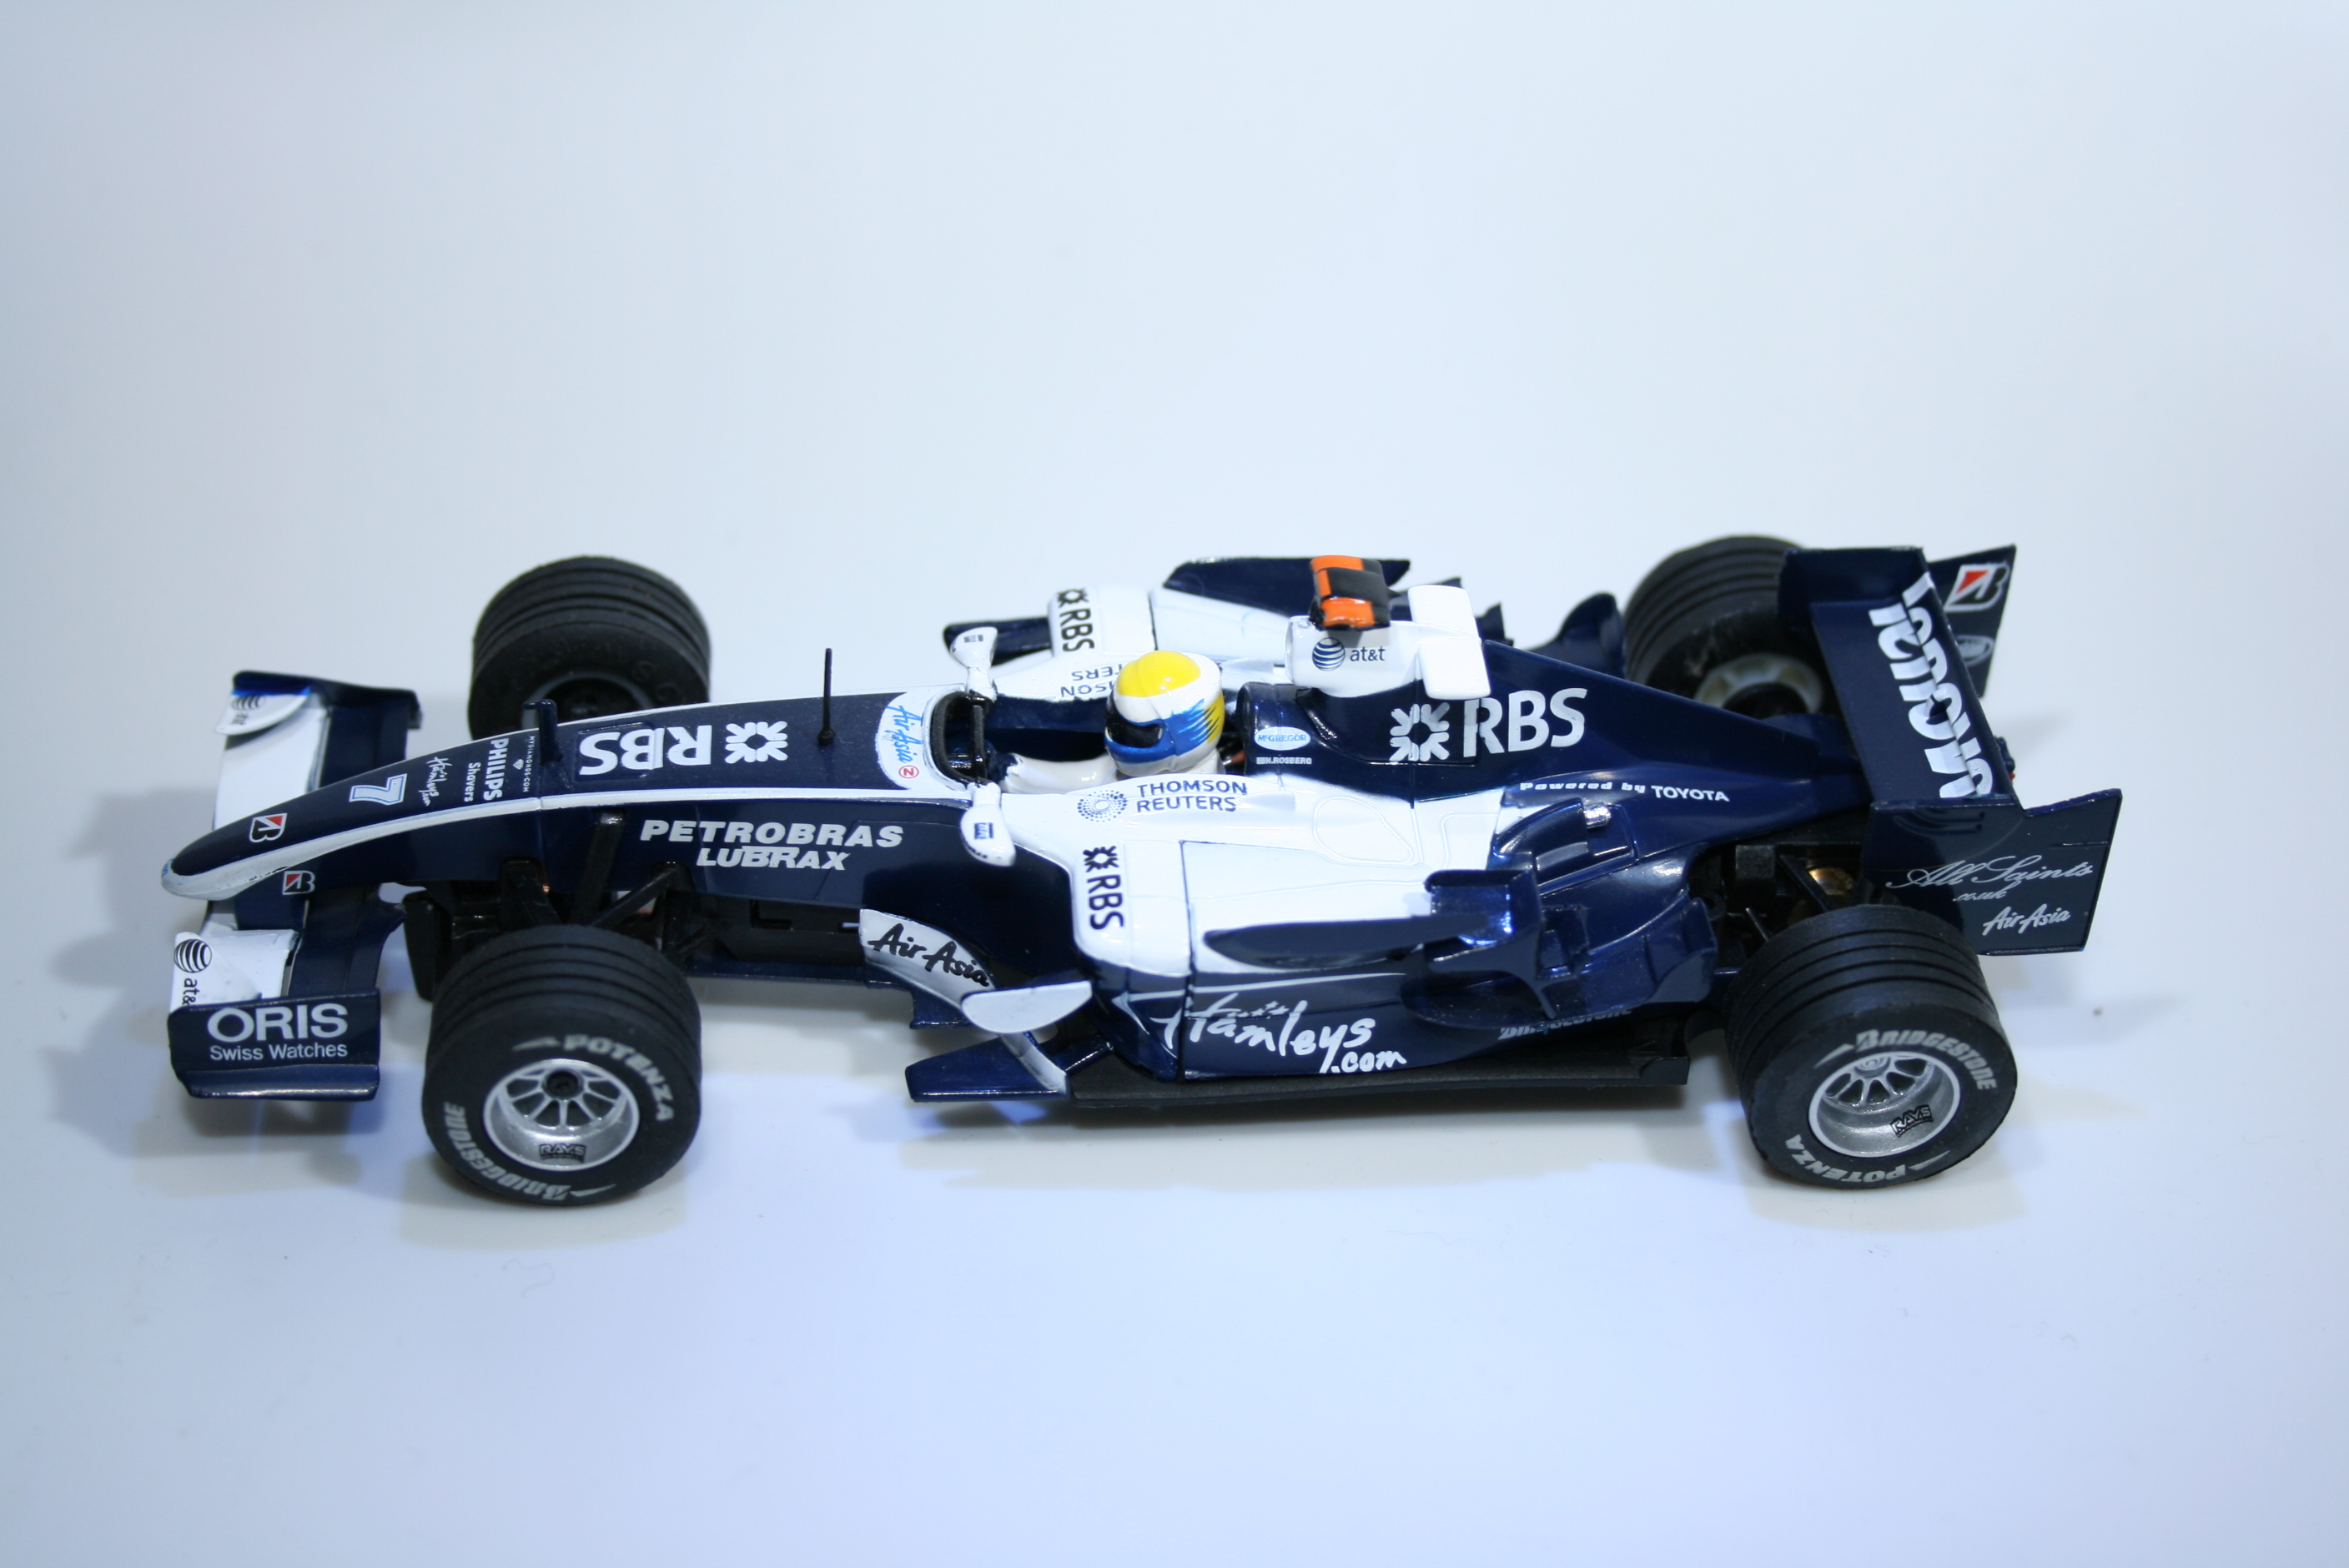 787 Williams FW30 2008 N Rosberg Scx 6288 2008 Boxed